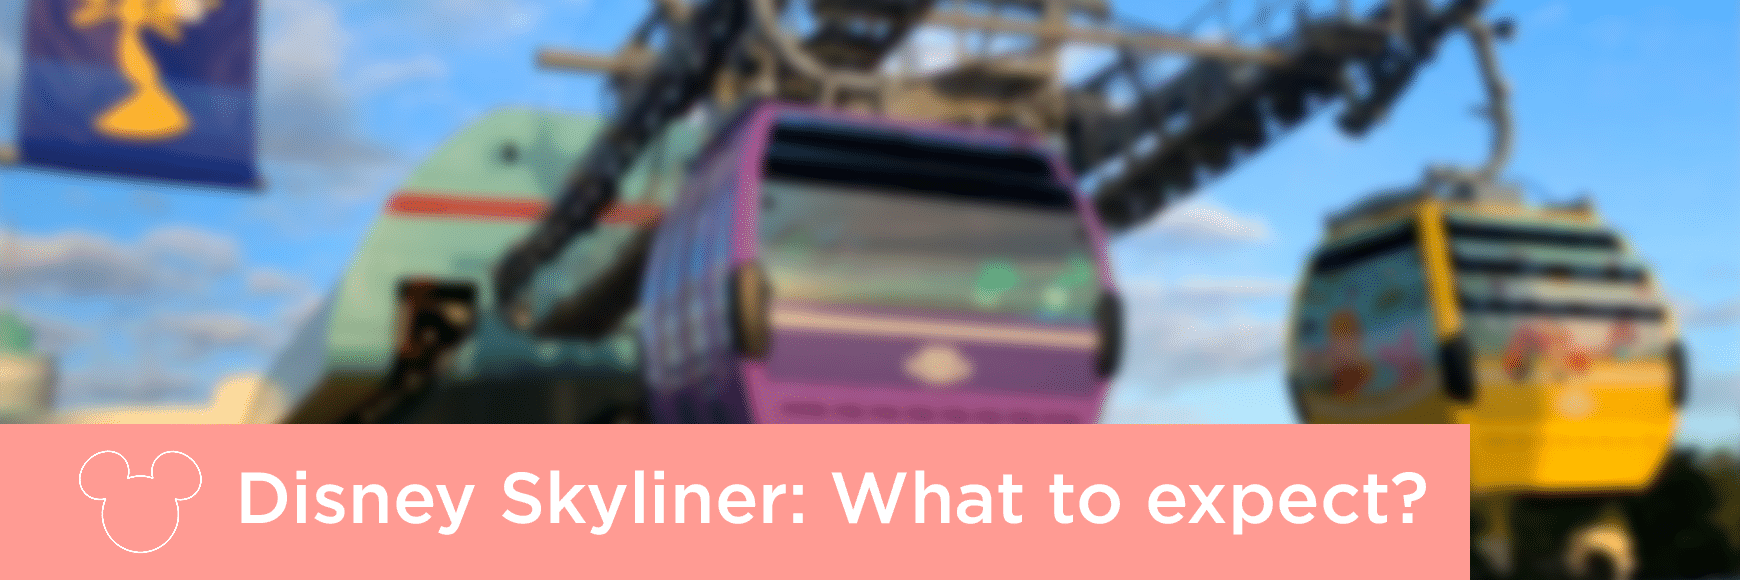 Disney Skyliner-Disney vacation packages